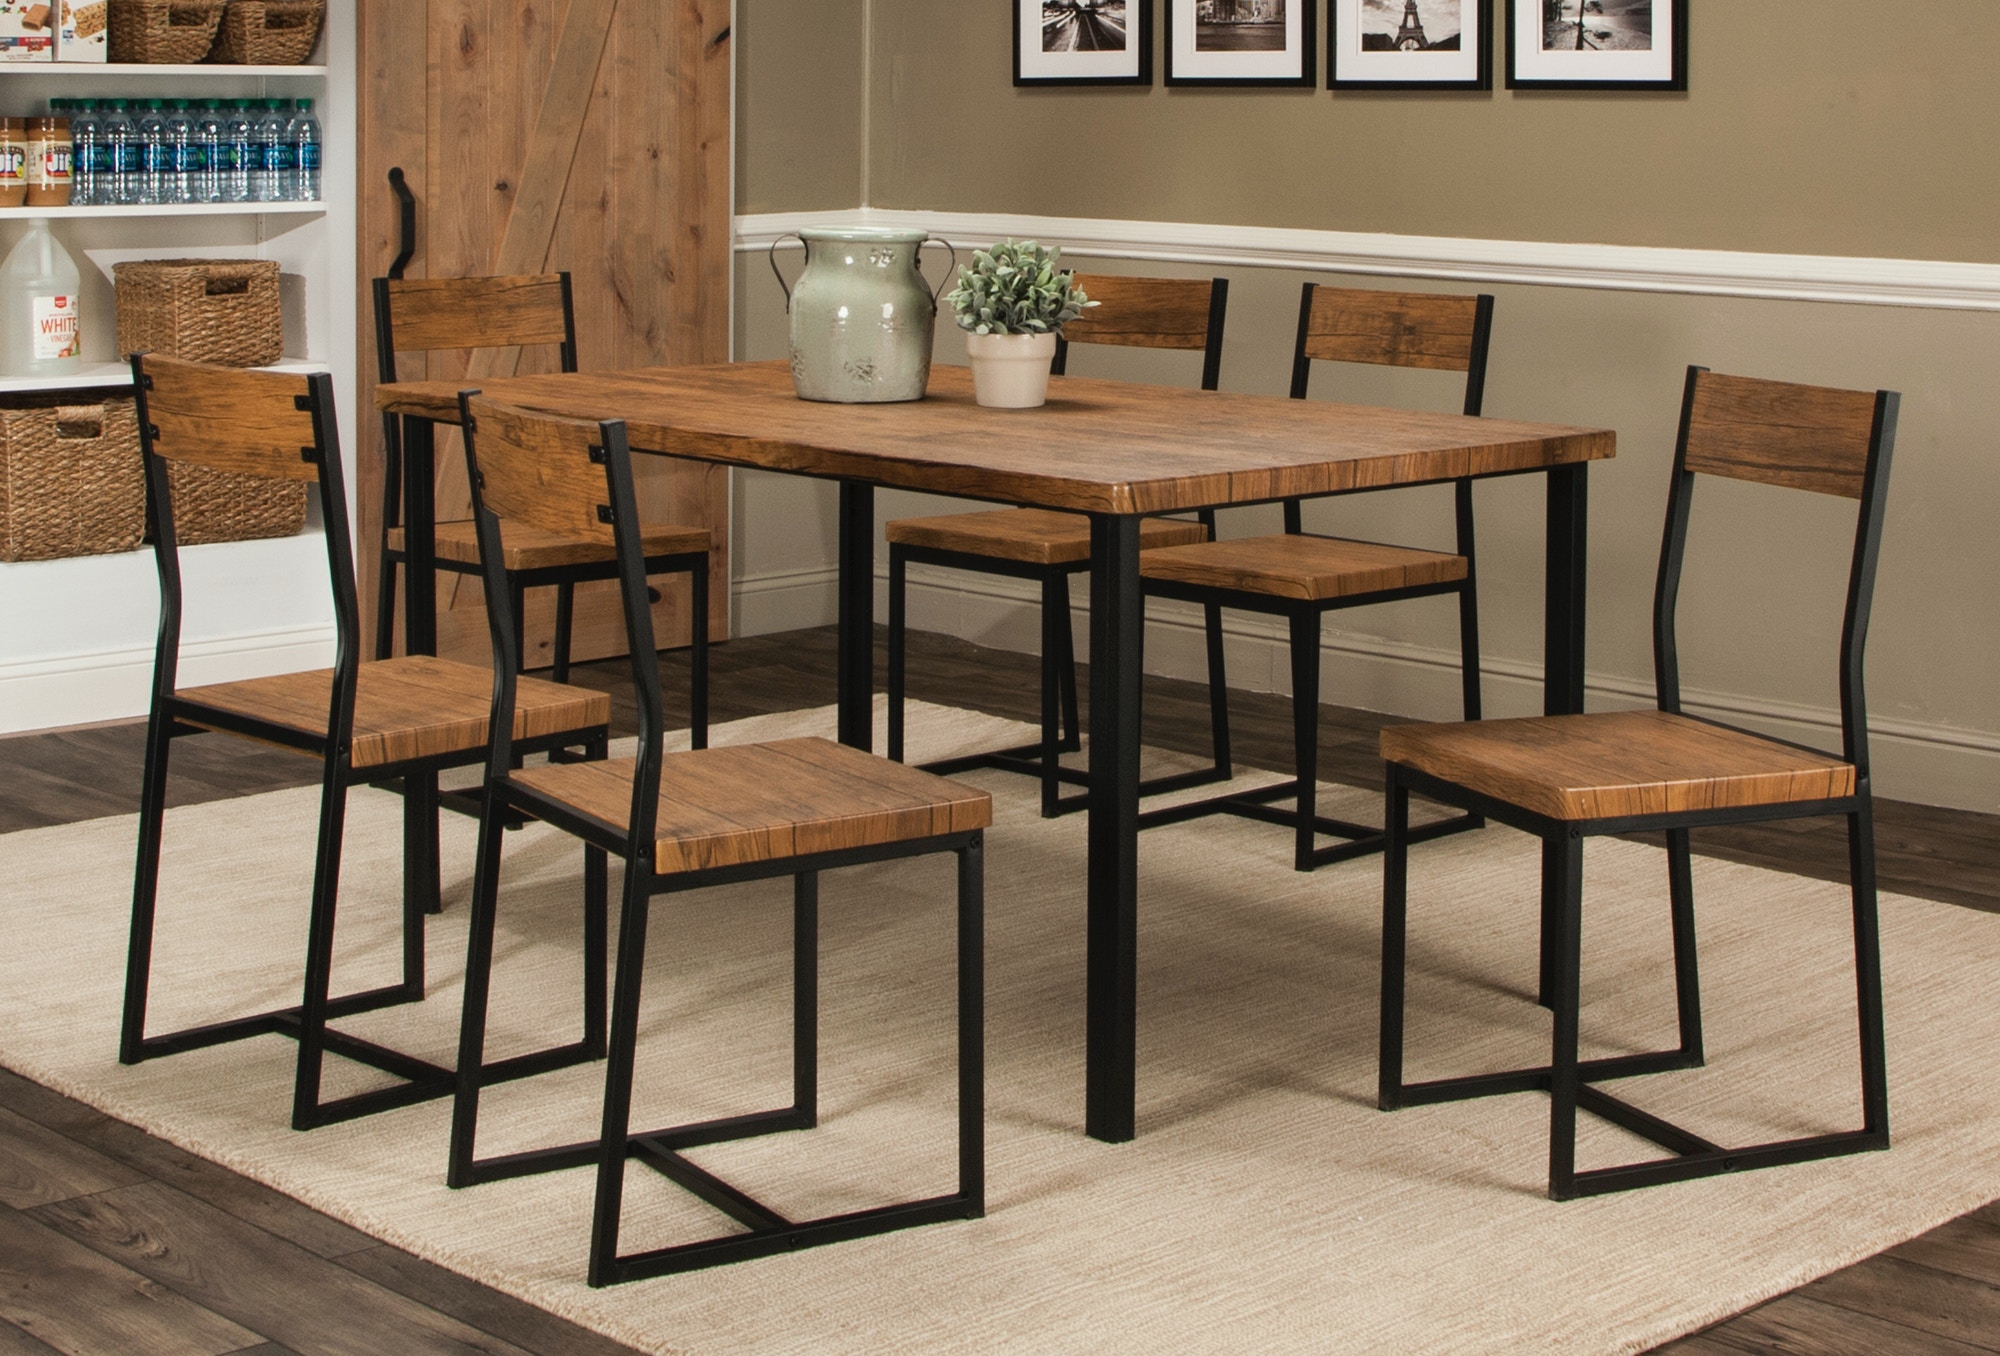 Cool dining room furniture st louis pictures best idea for Thomasville american expressions bedroom furniture